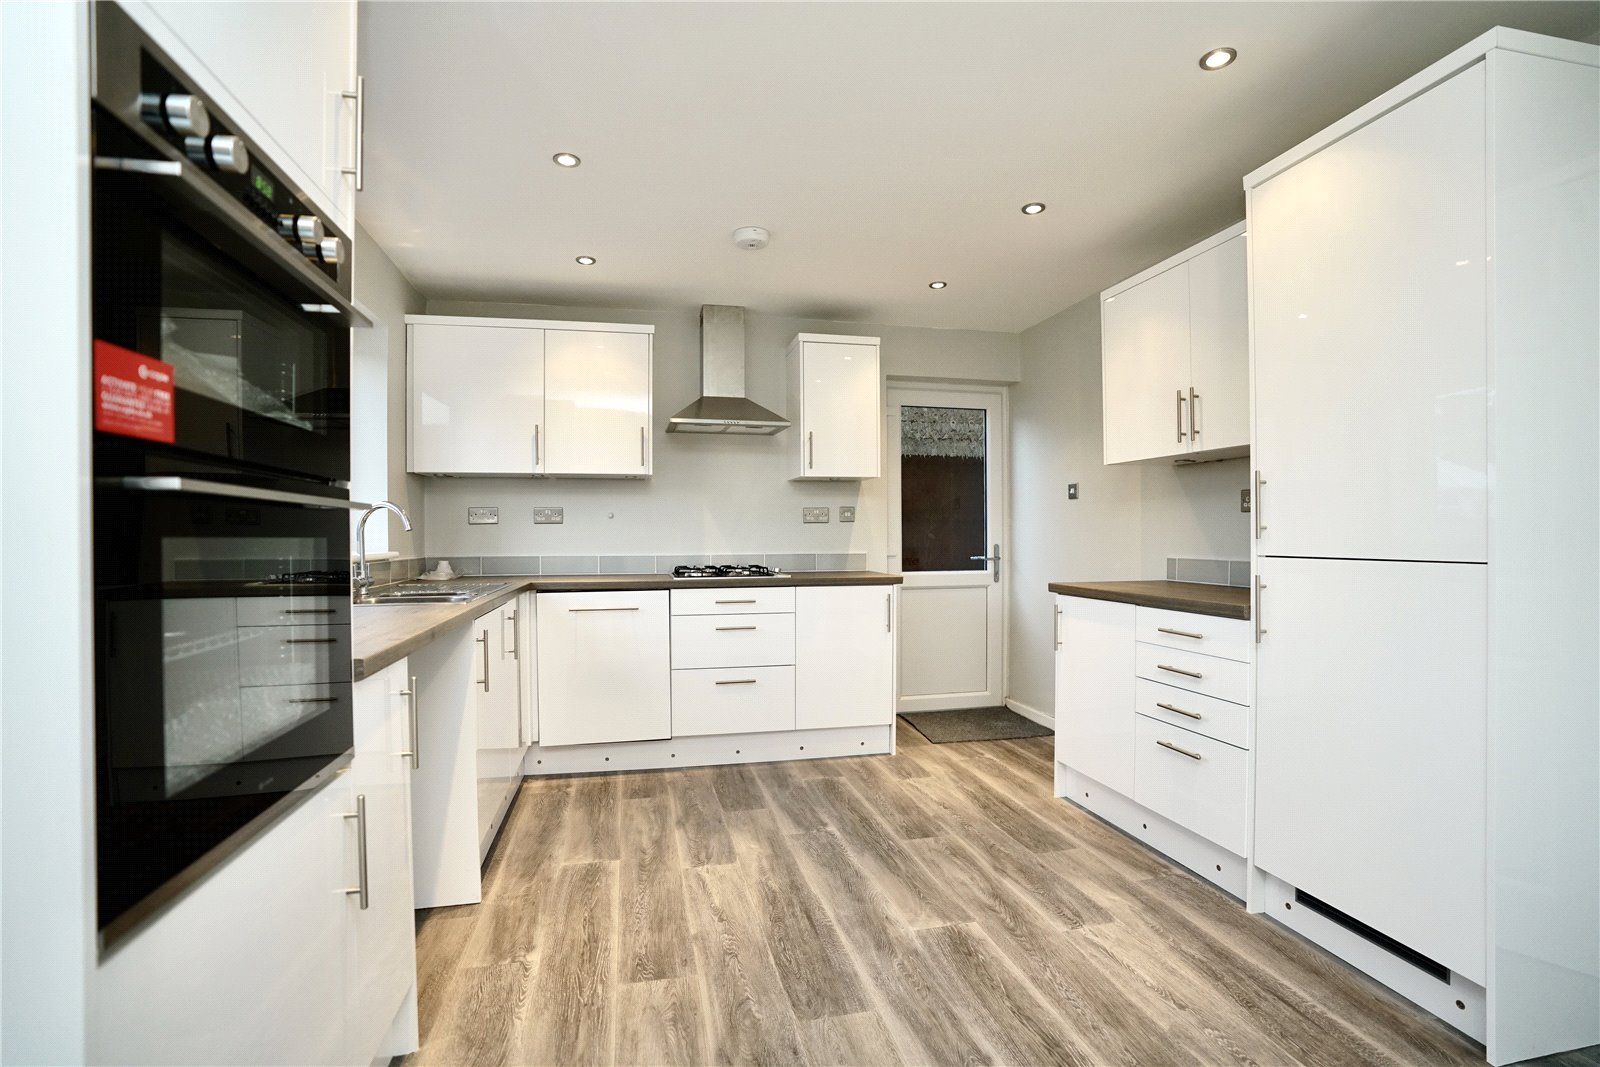 4 bed house for sale in Eaton Socon  - Property Image 6